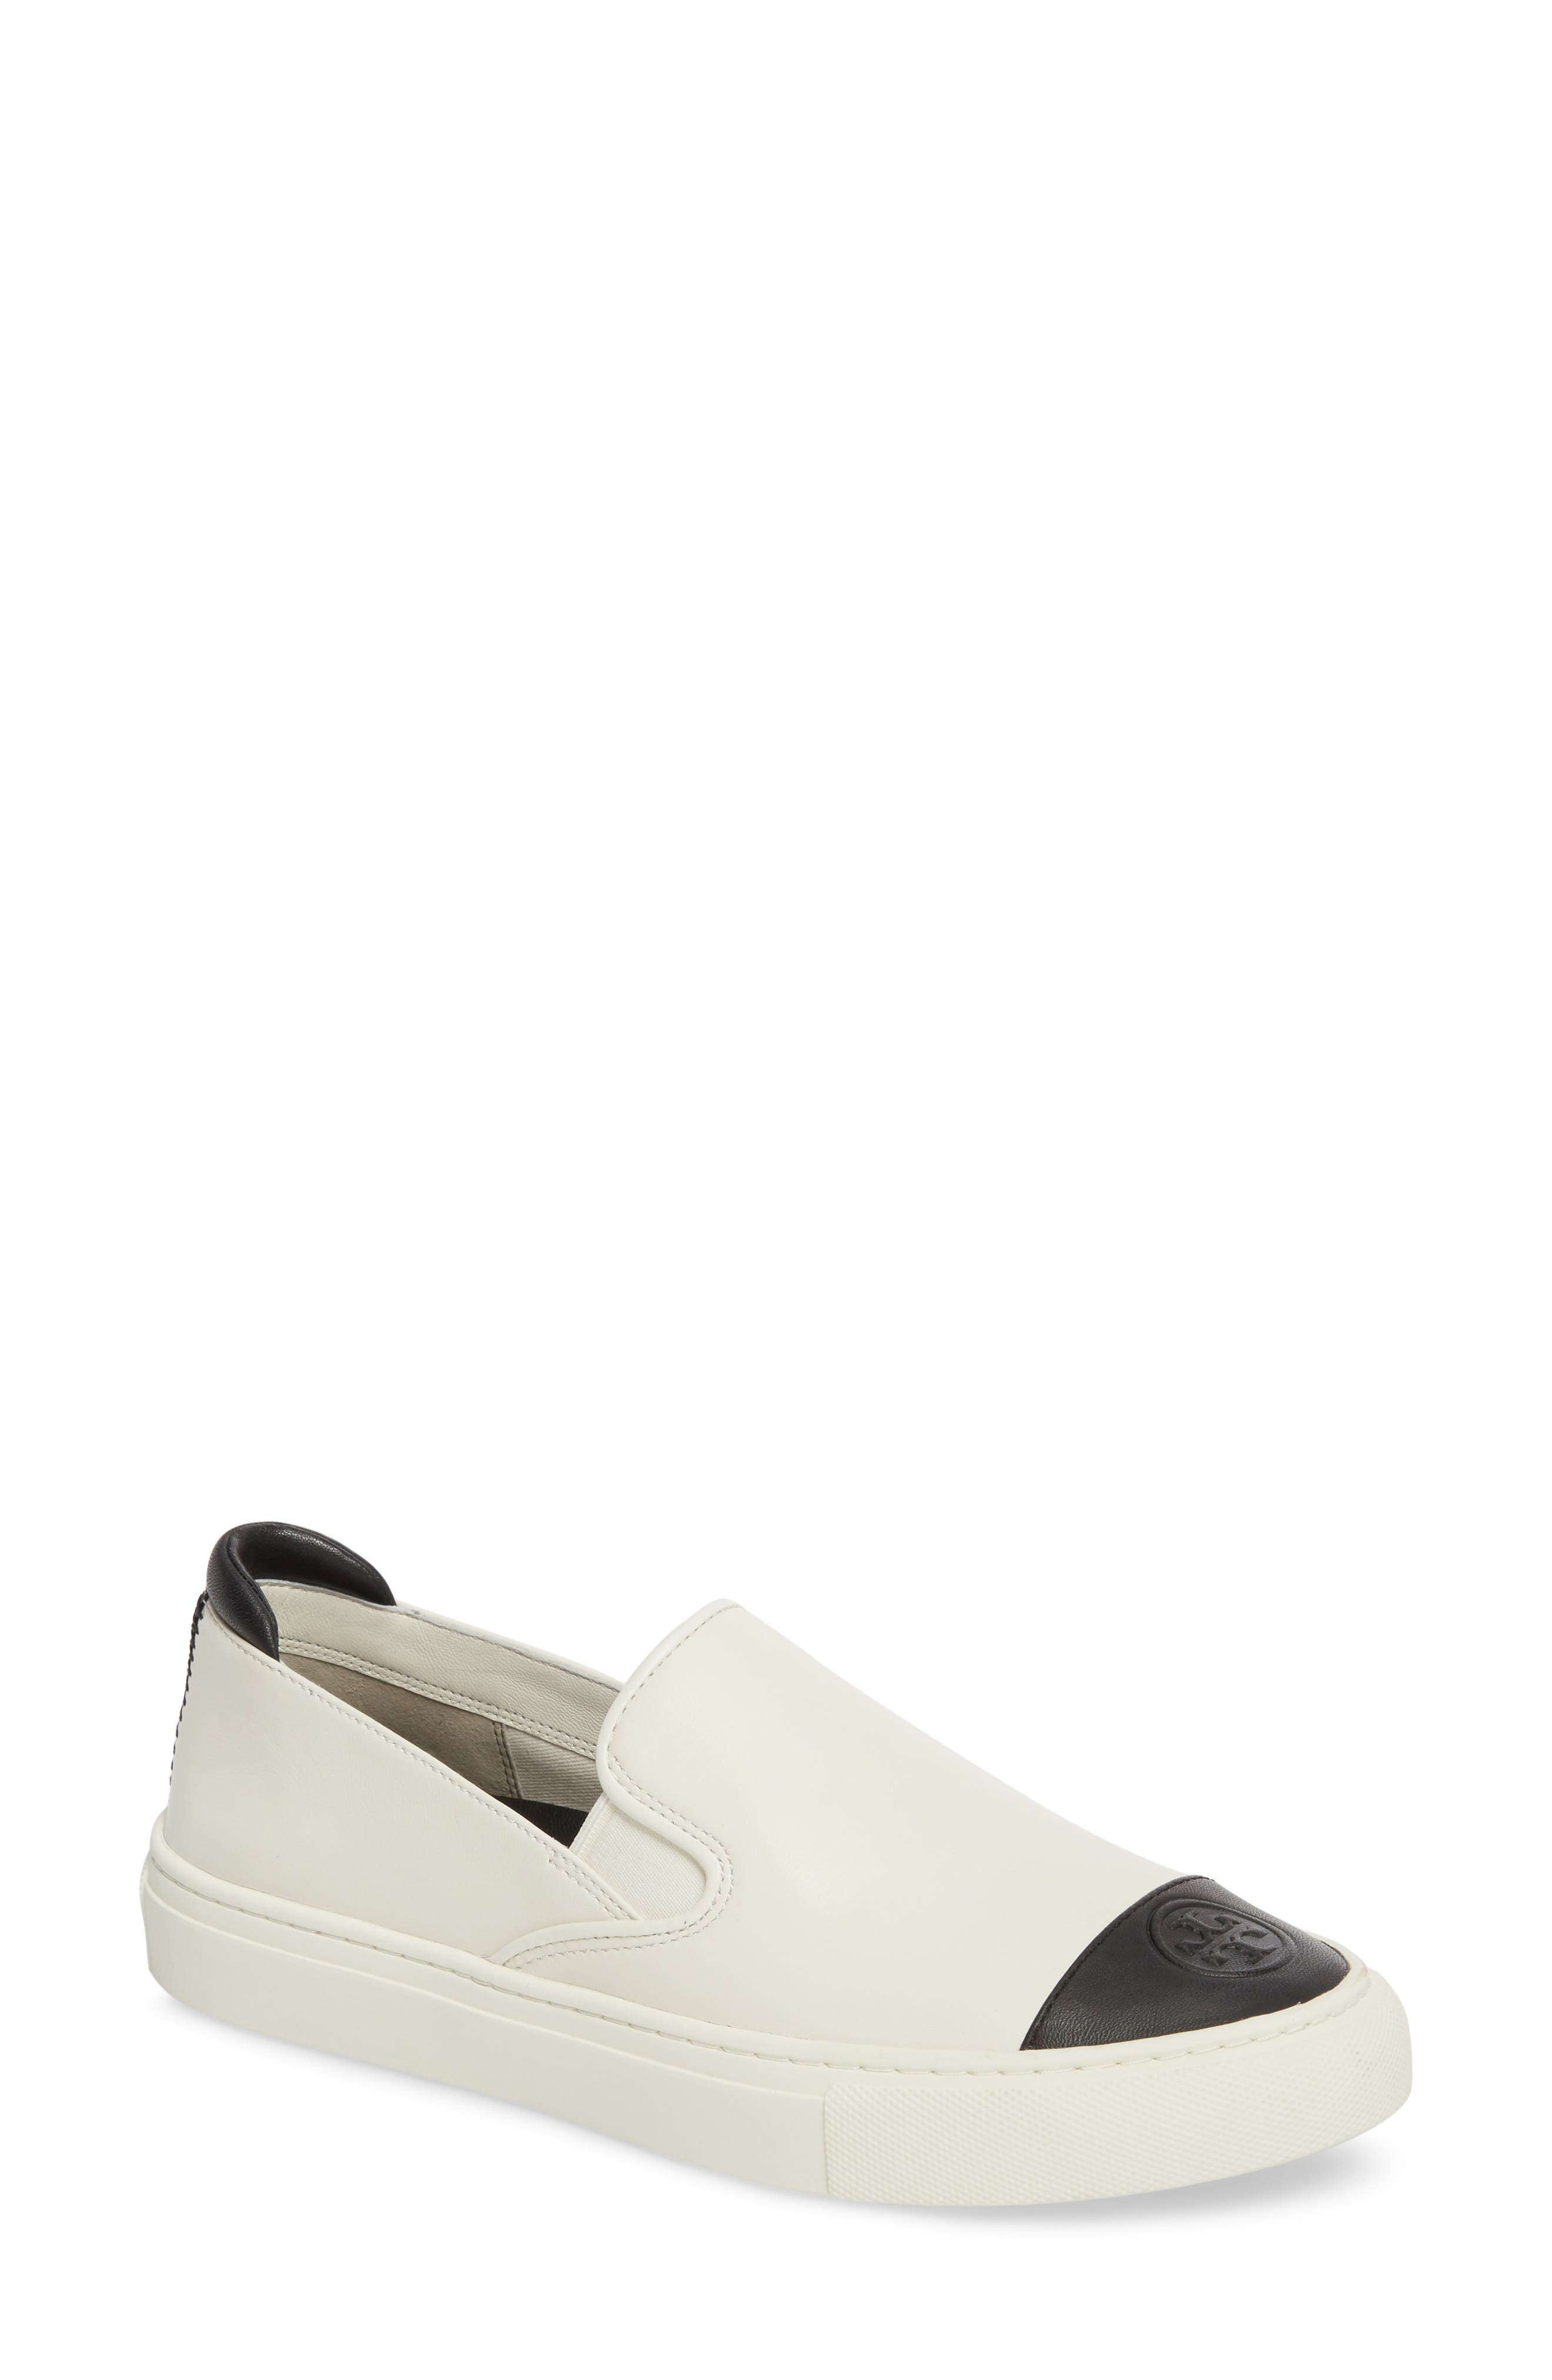 Colorblock Slip-On Sneaker,                             Main thumbnail 1, color,                             PERFECT IVORY/ PERFECT BLACK